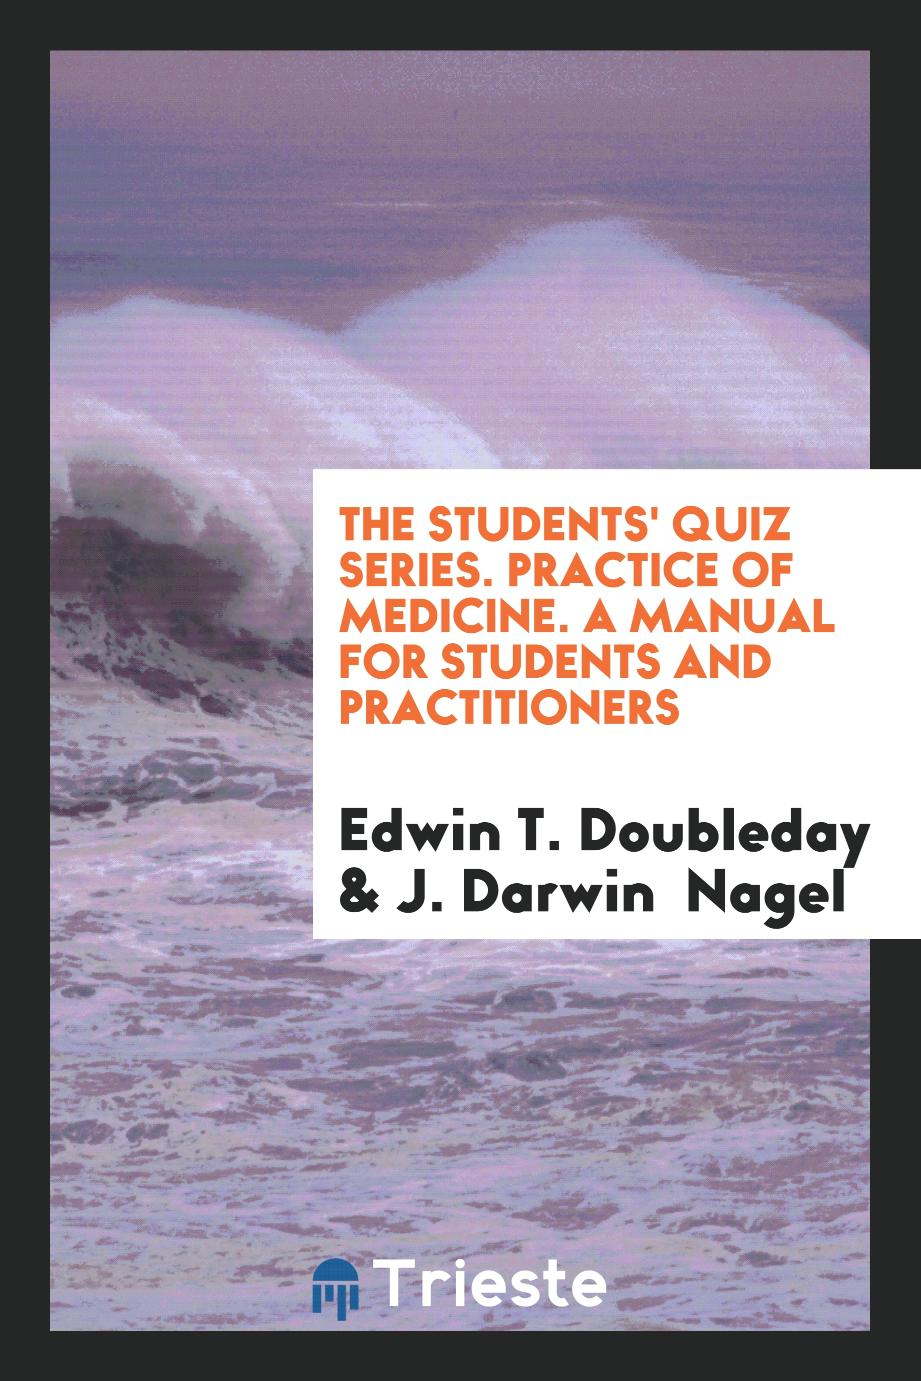 The Students' Quiz Series. Practice of Medicine. A Manual for Students and Practitioners